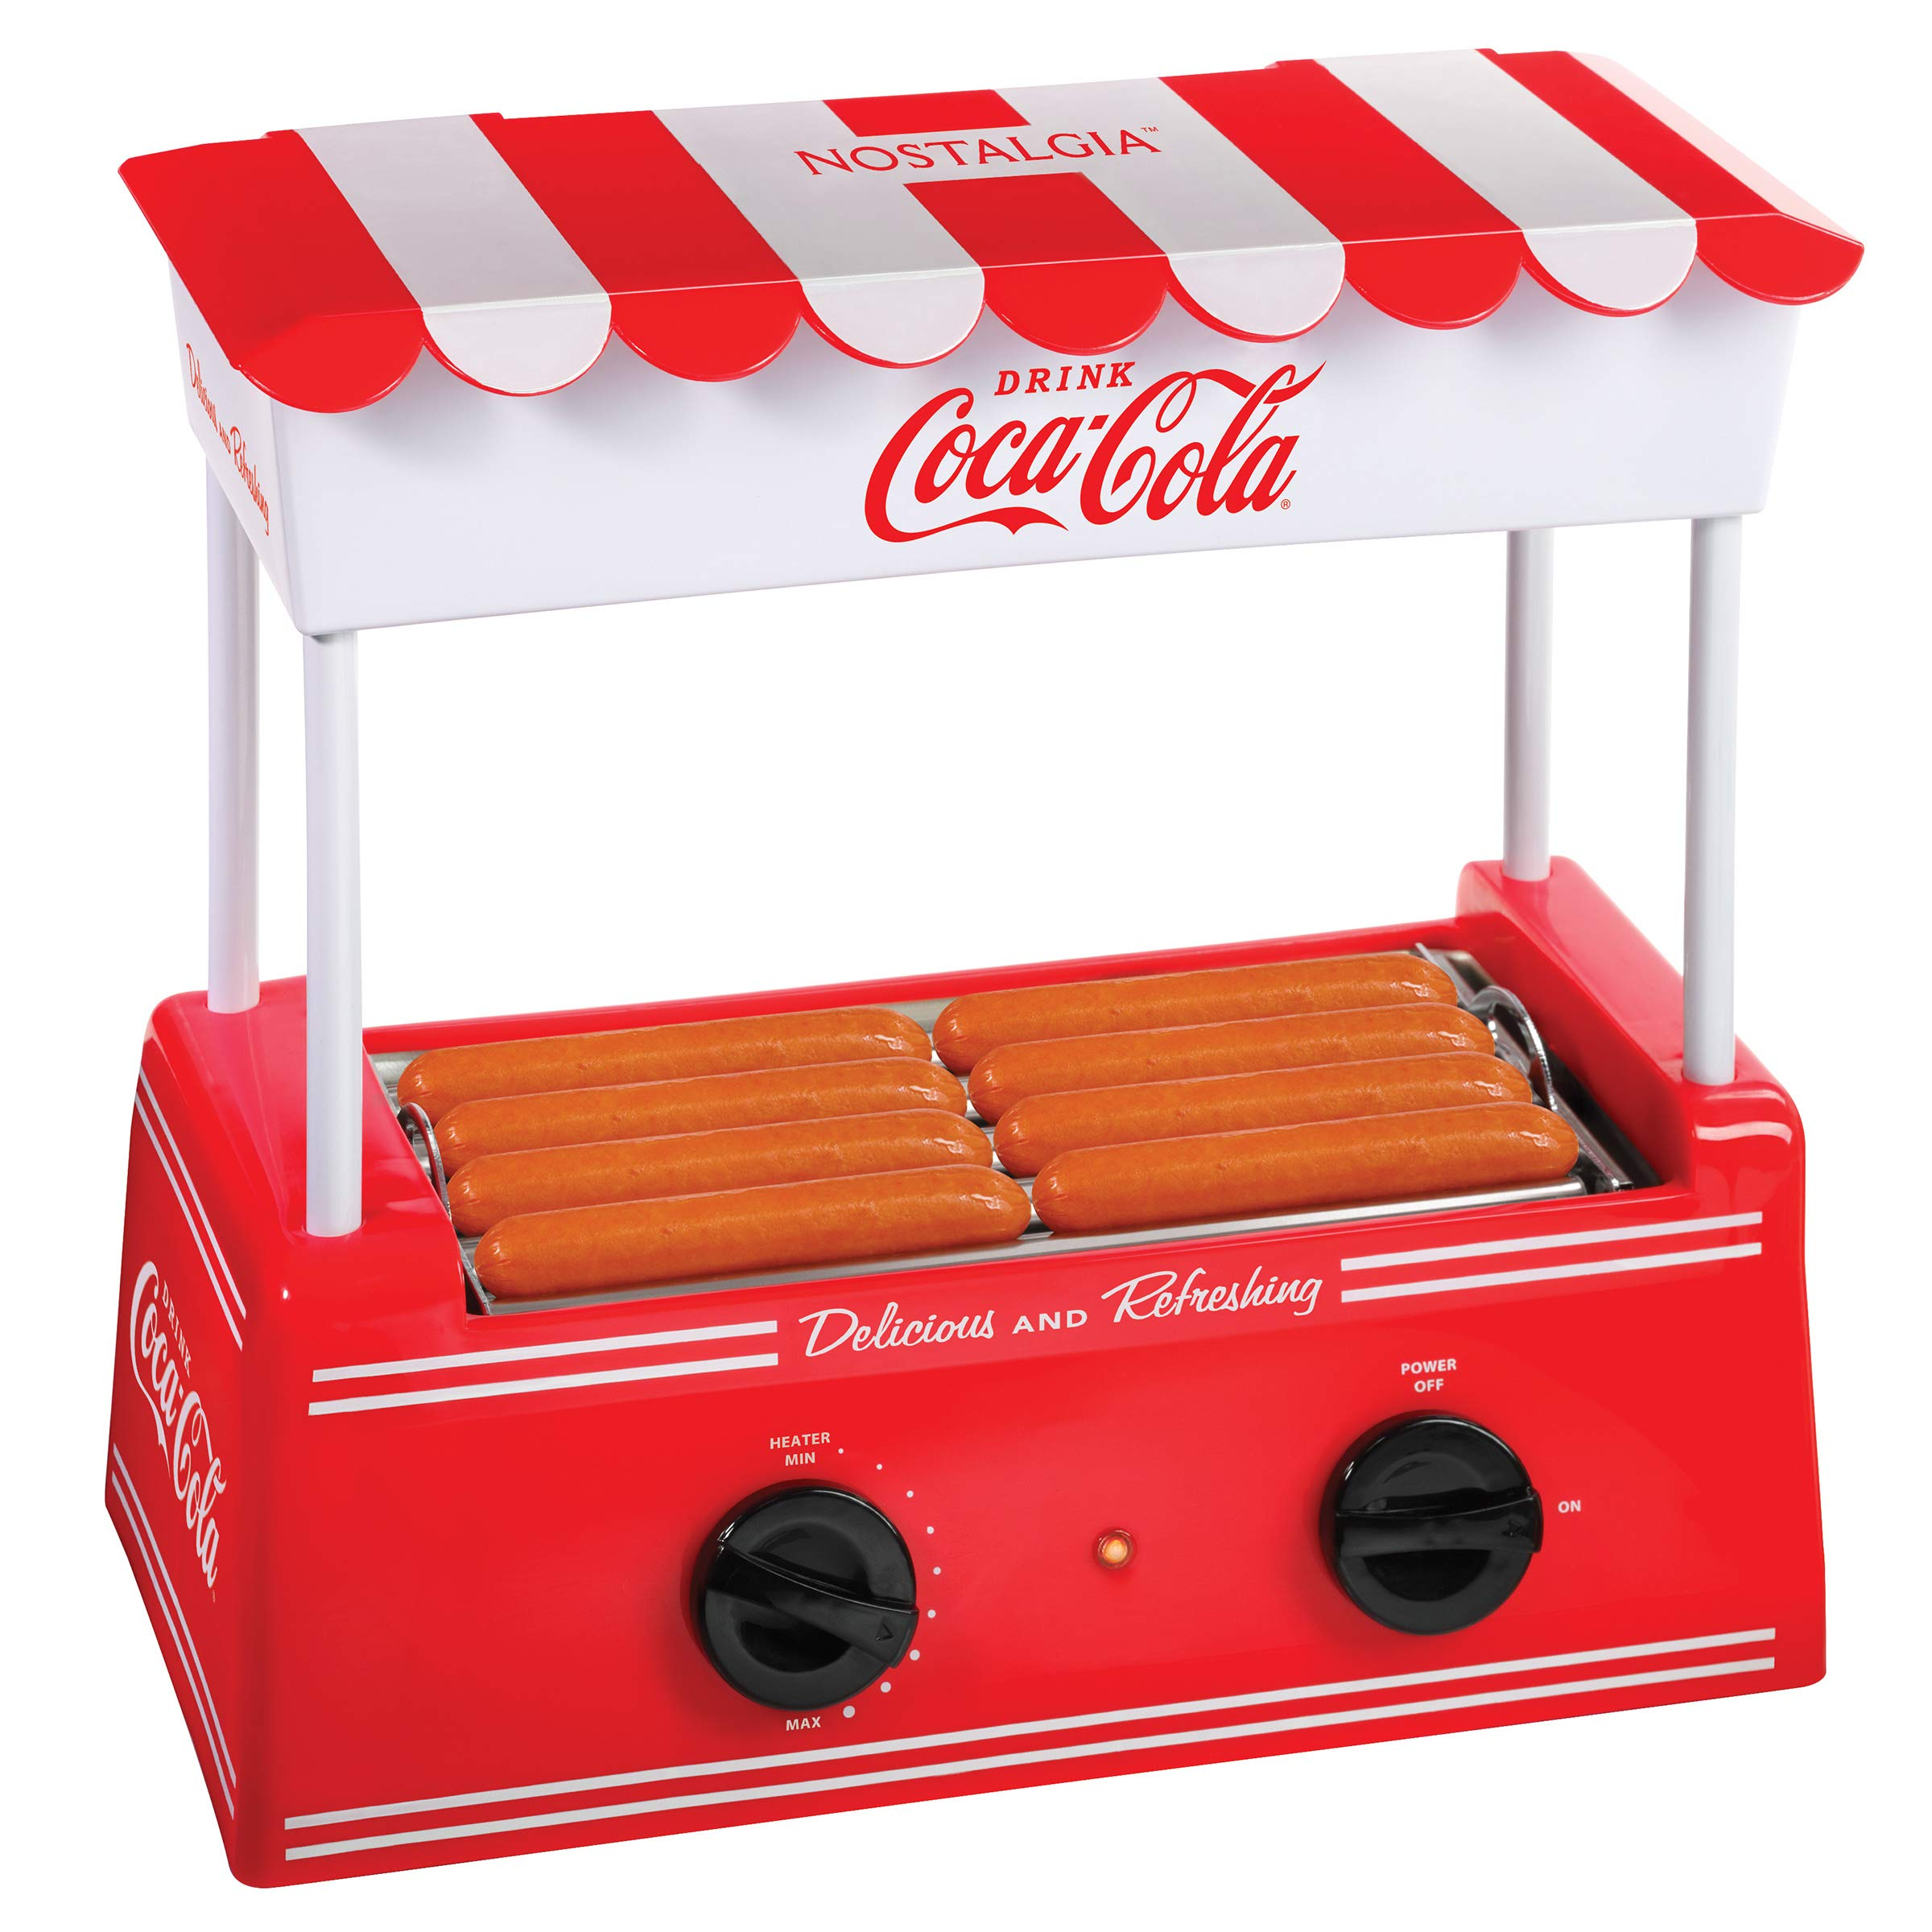 Nostalgia HDR8CK Coca-Cola Hot Dog Warmer 8 Regular Sized, 4 Foot Long and 6 Bun Capacity, Stainless Steel Rollers, Perfect For Breakfast Sausages, Brats, Taquitos, Egg Rolls by Nostalgia